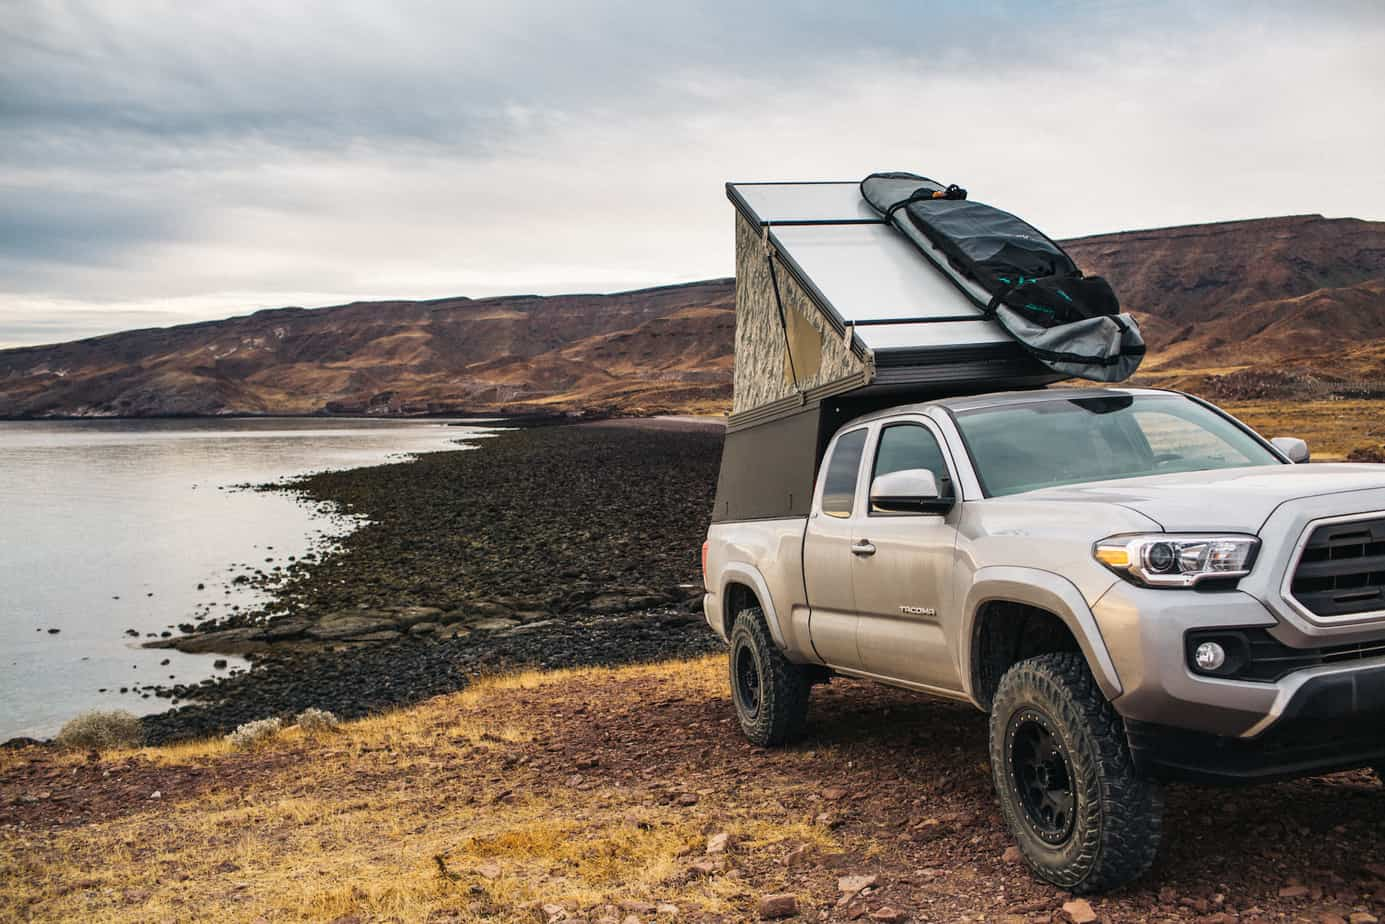 Go Fast Campers Ultra Light Off Road Camper Solutions Expedition Ford Raptor With S When In Use As A Traditional And Actuating The Roof It Will Carry 100 Pounds This Should Be Enough For Most Folks Kayaks Bikes Skis